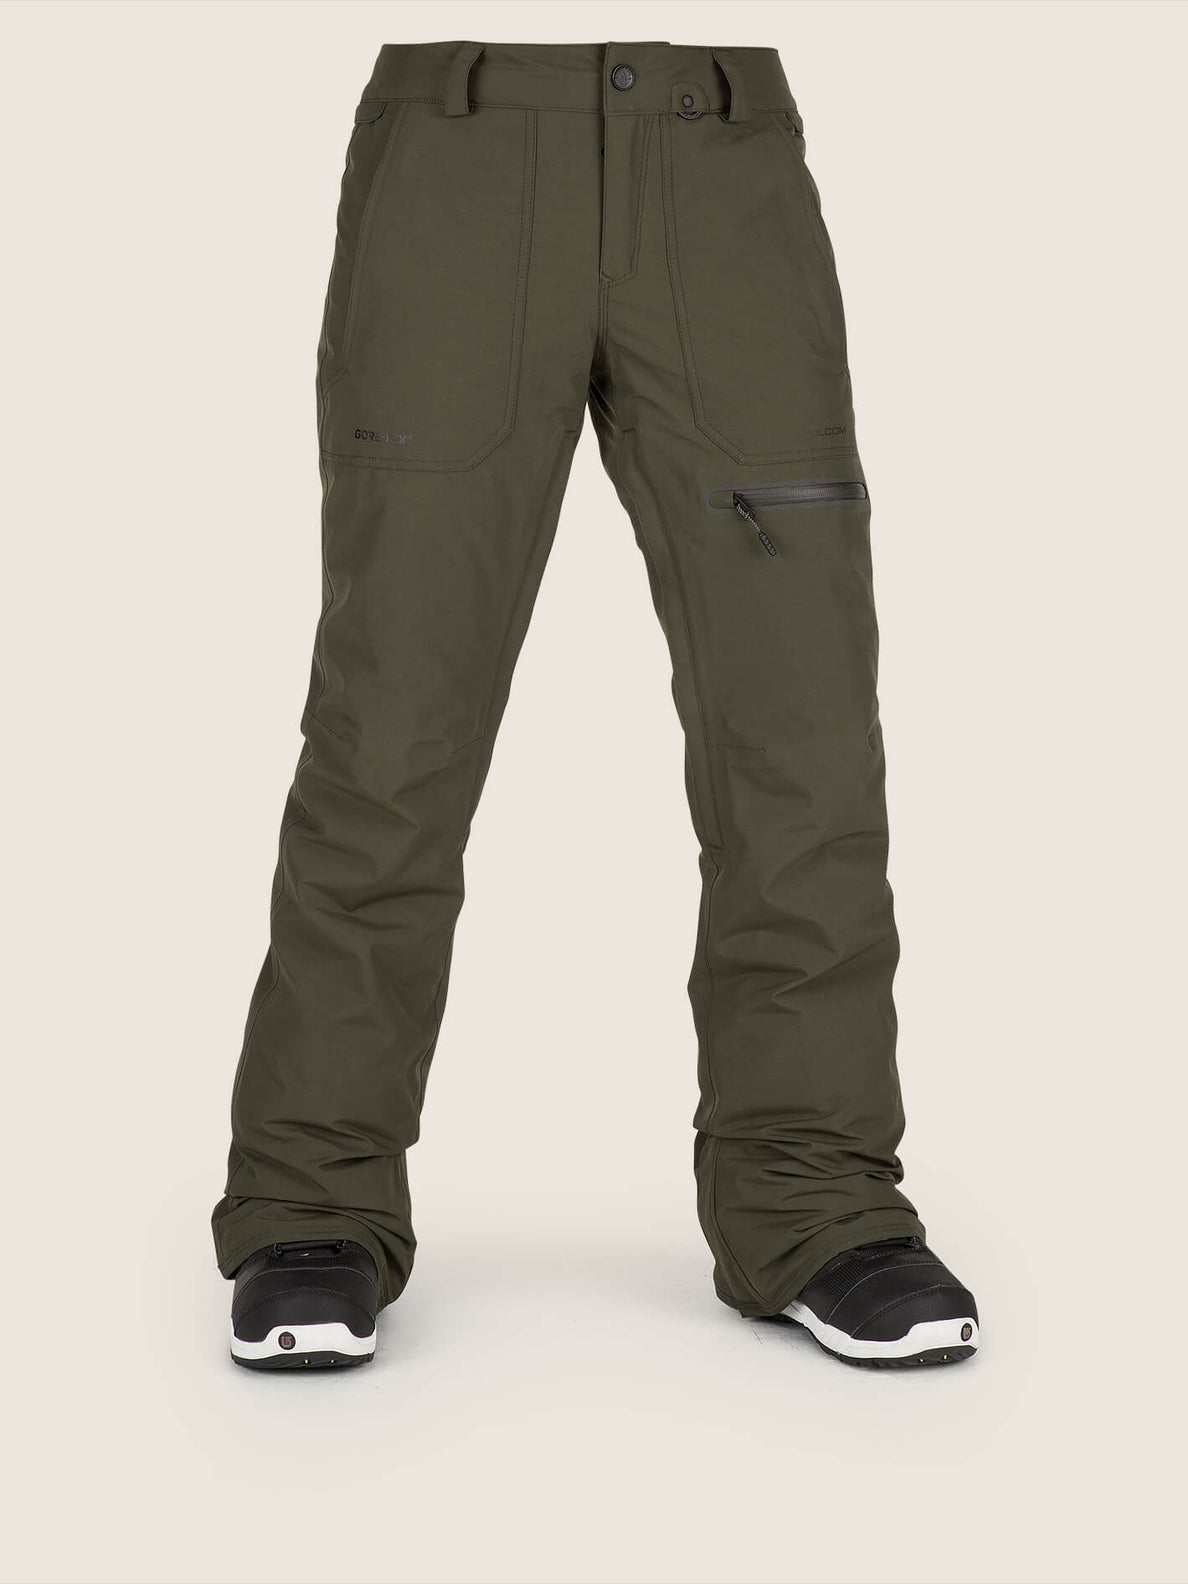 Knox Insulated Gore-tex Pant In Snow Forest, Front View